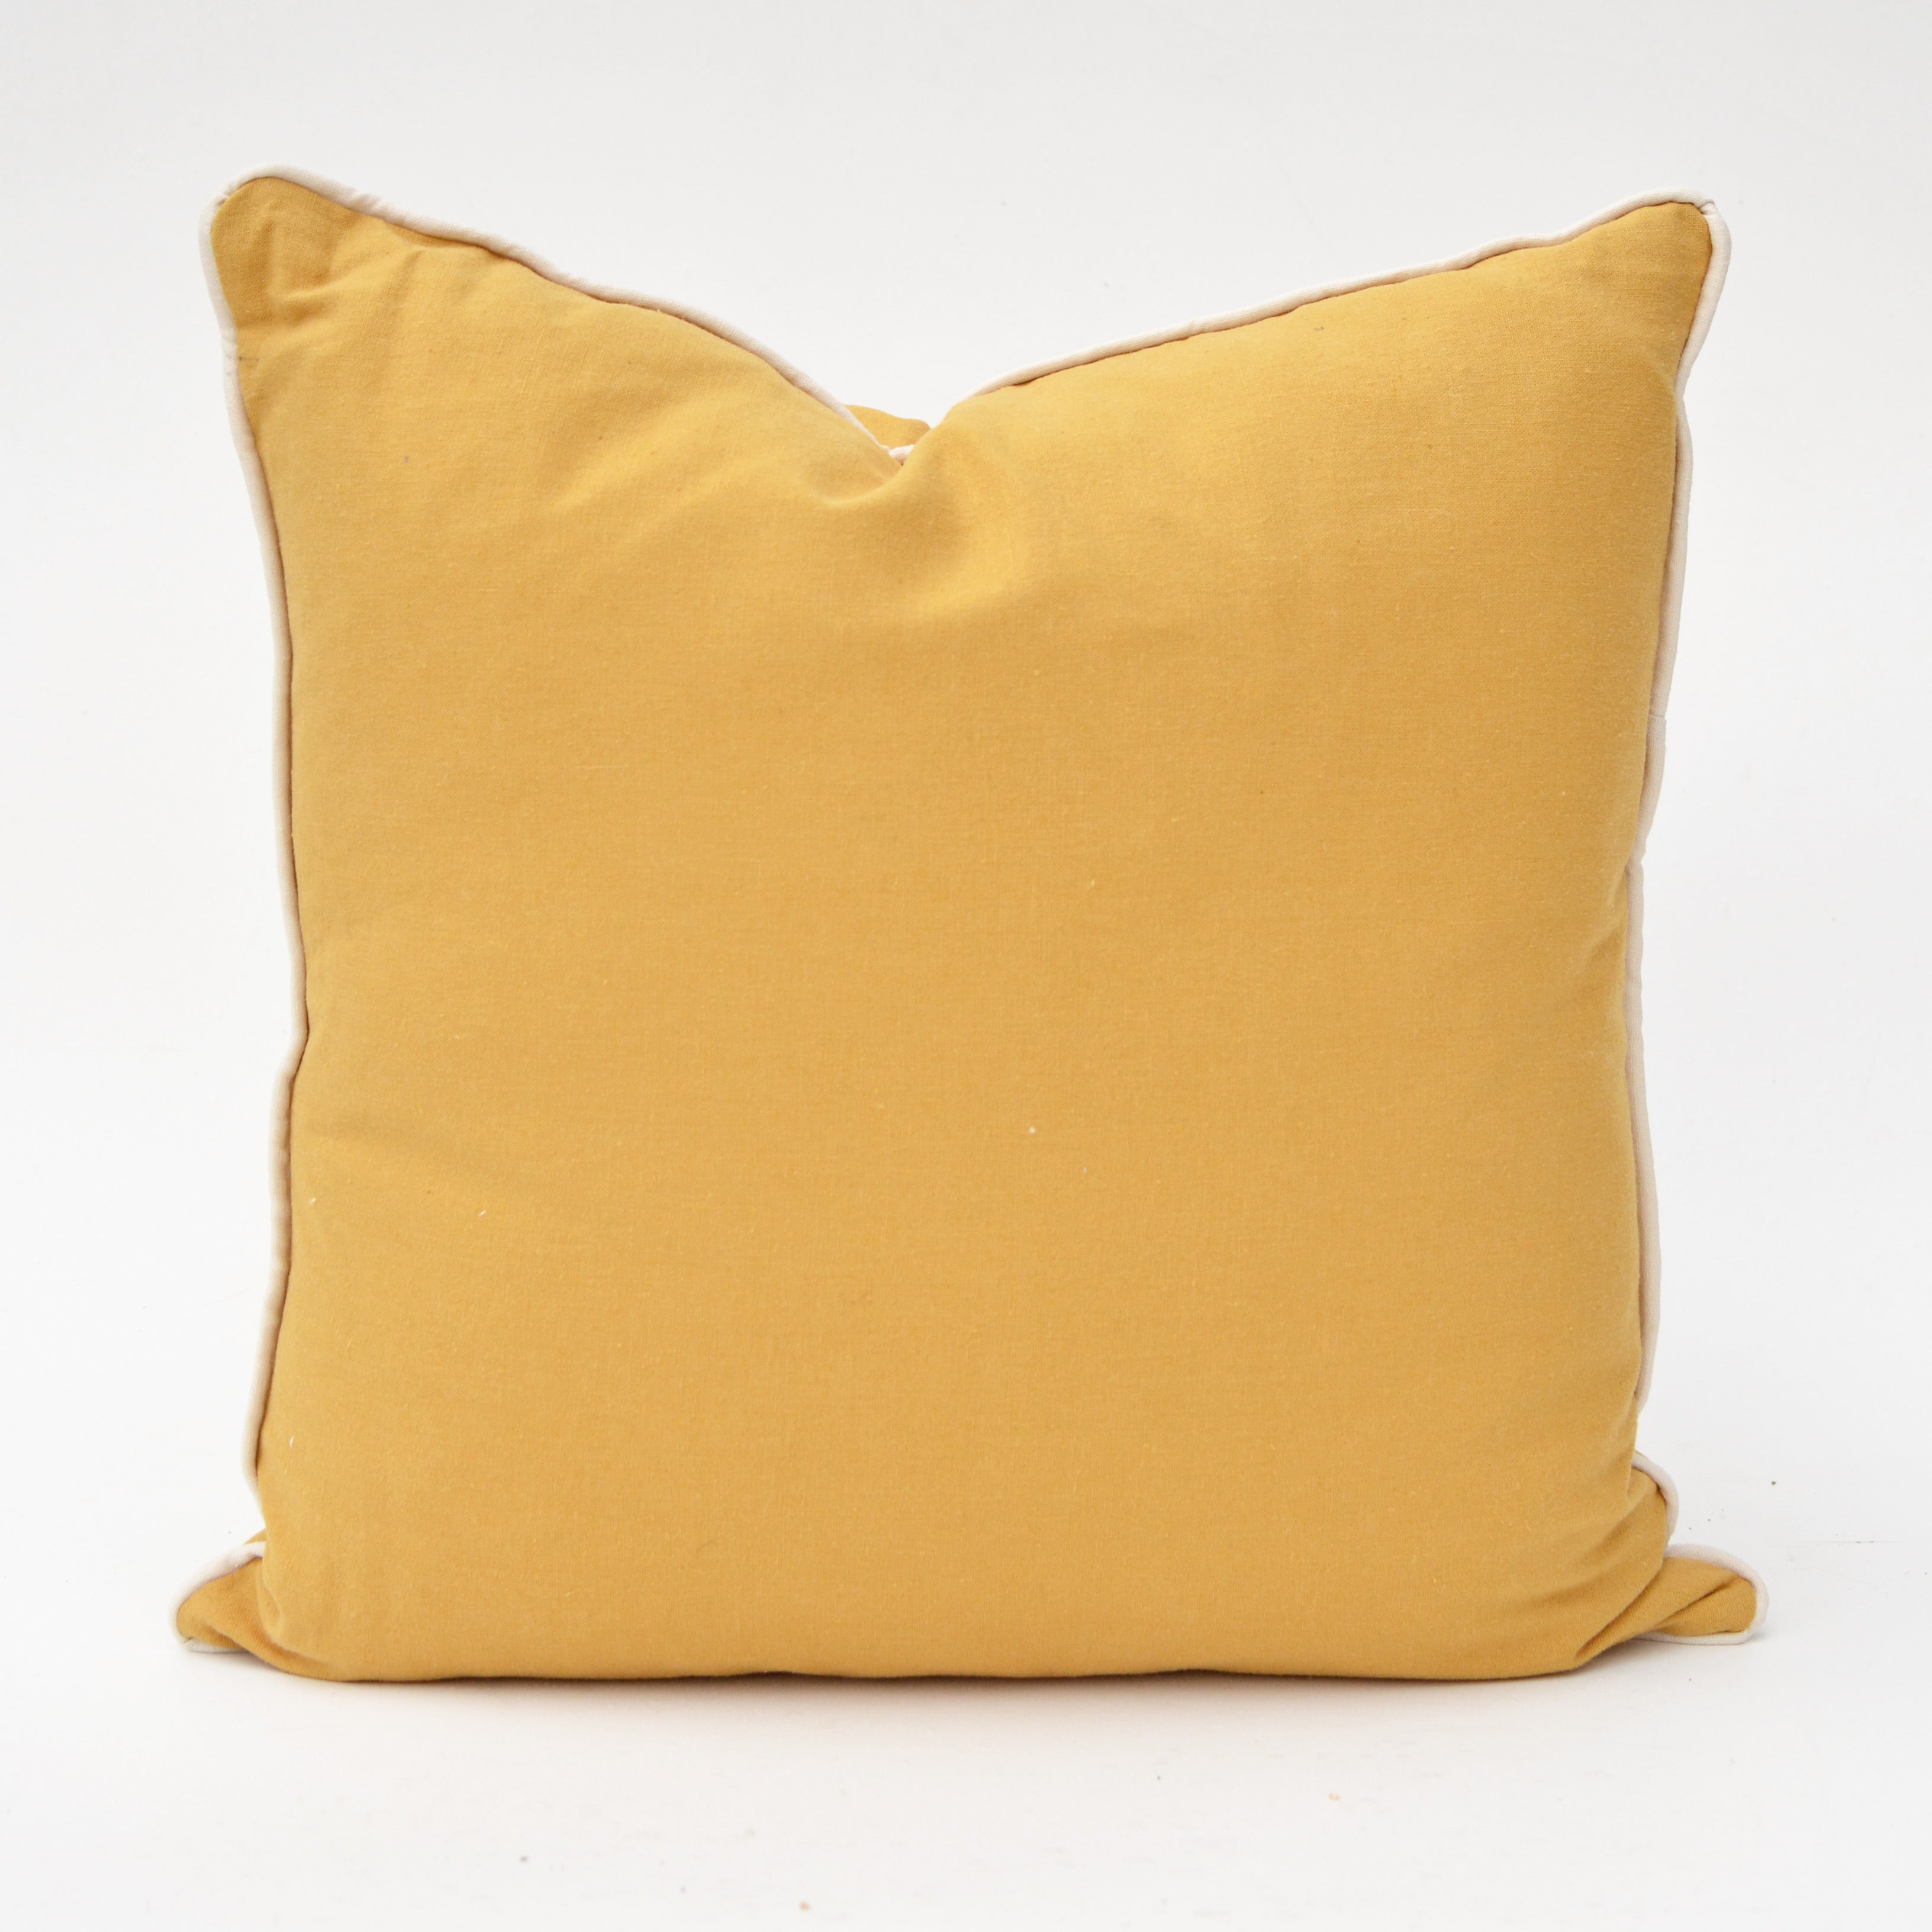 living couch geometric pillows yellow pillow throw for room modern blue and